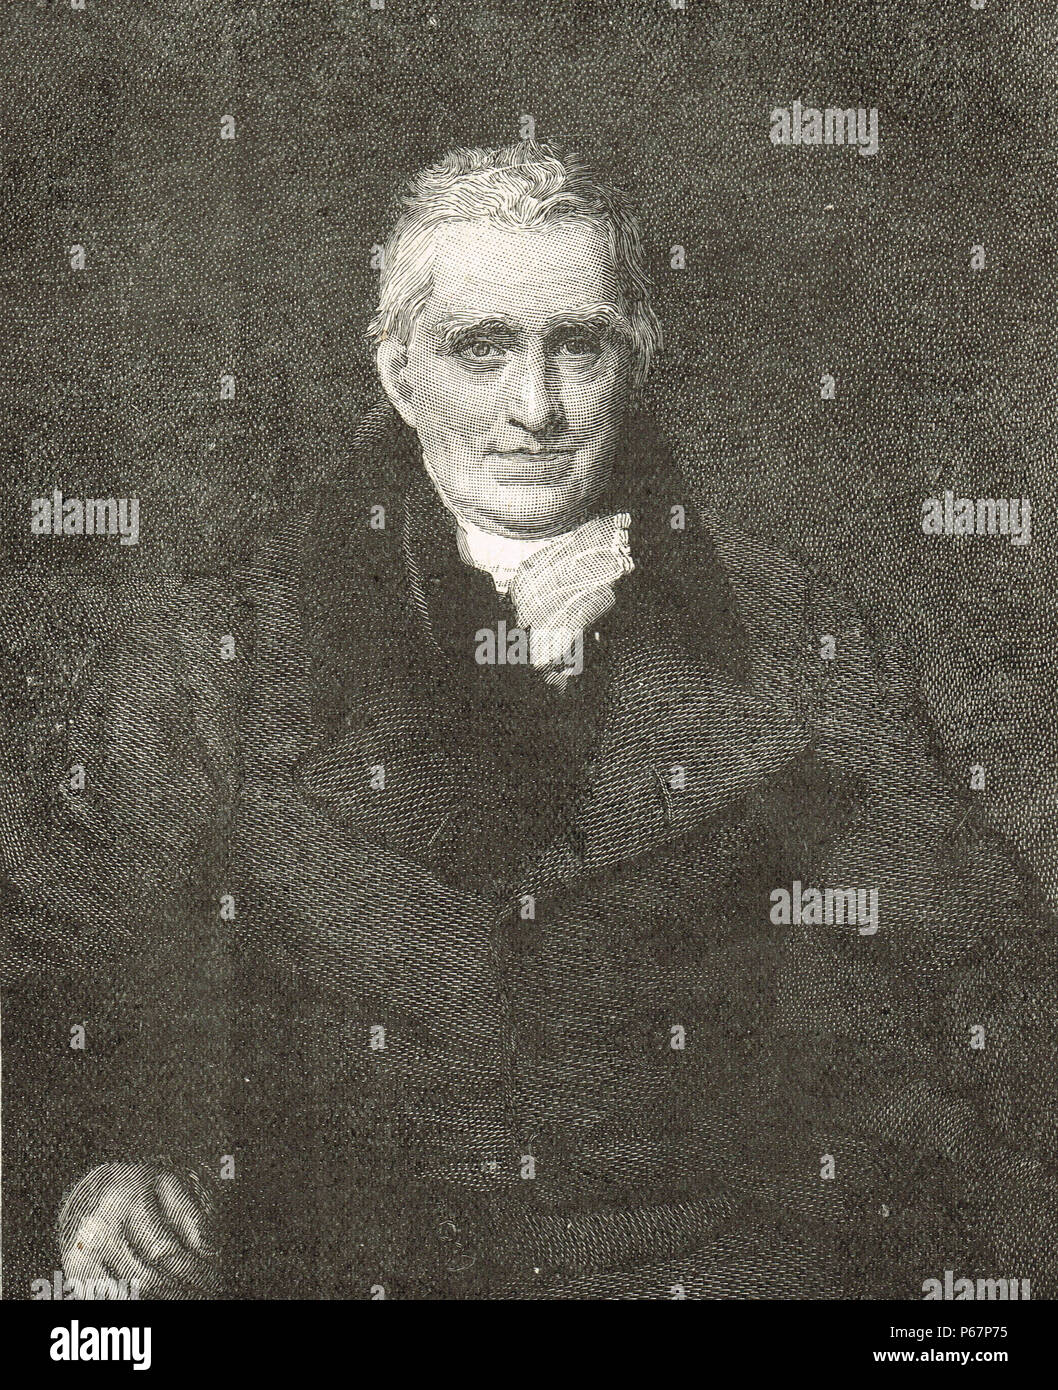 John Scott, 1st Earl of Eldon, British barrister and politician, resigned in protest as Lord Chancellor of Great Britain, against Catholic Emancipation - Stock Image